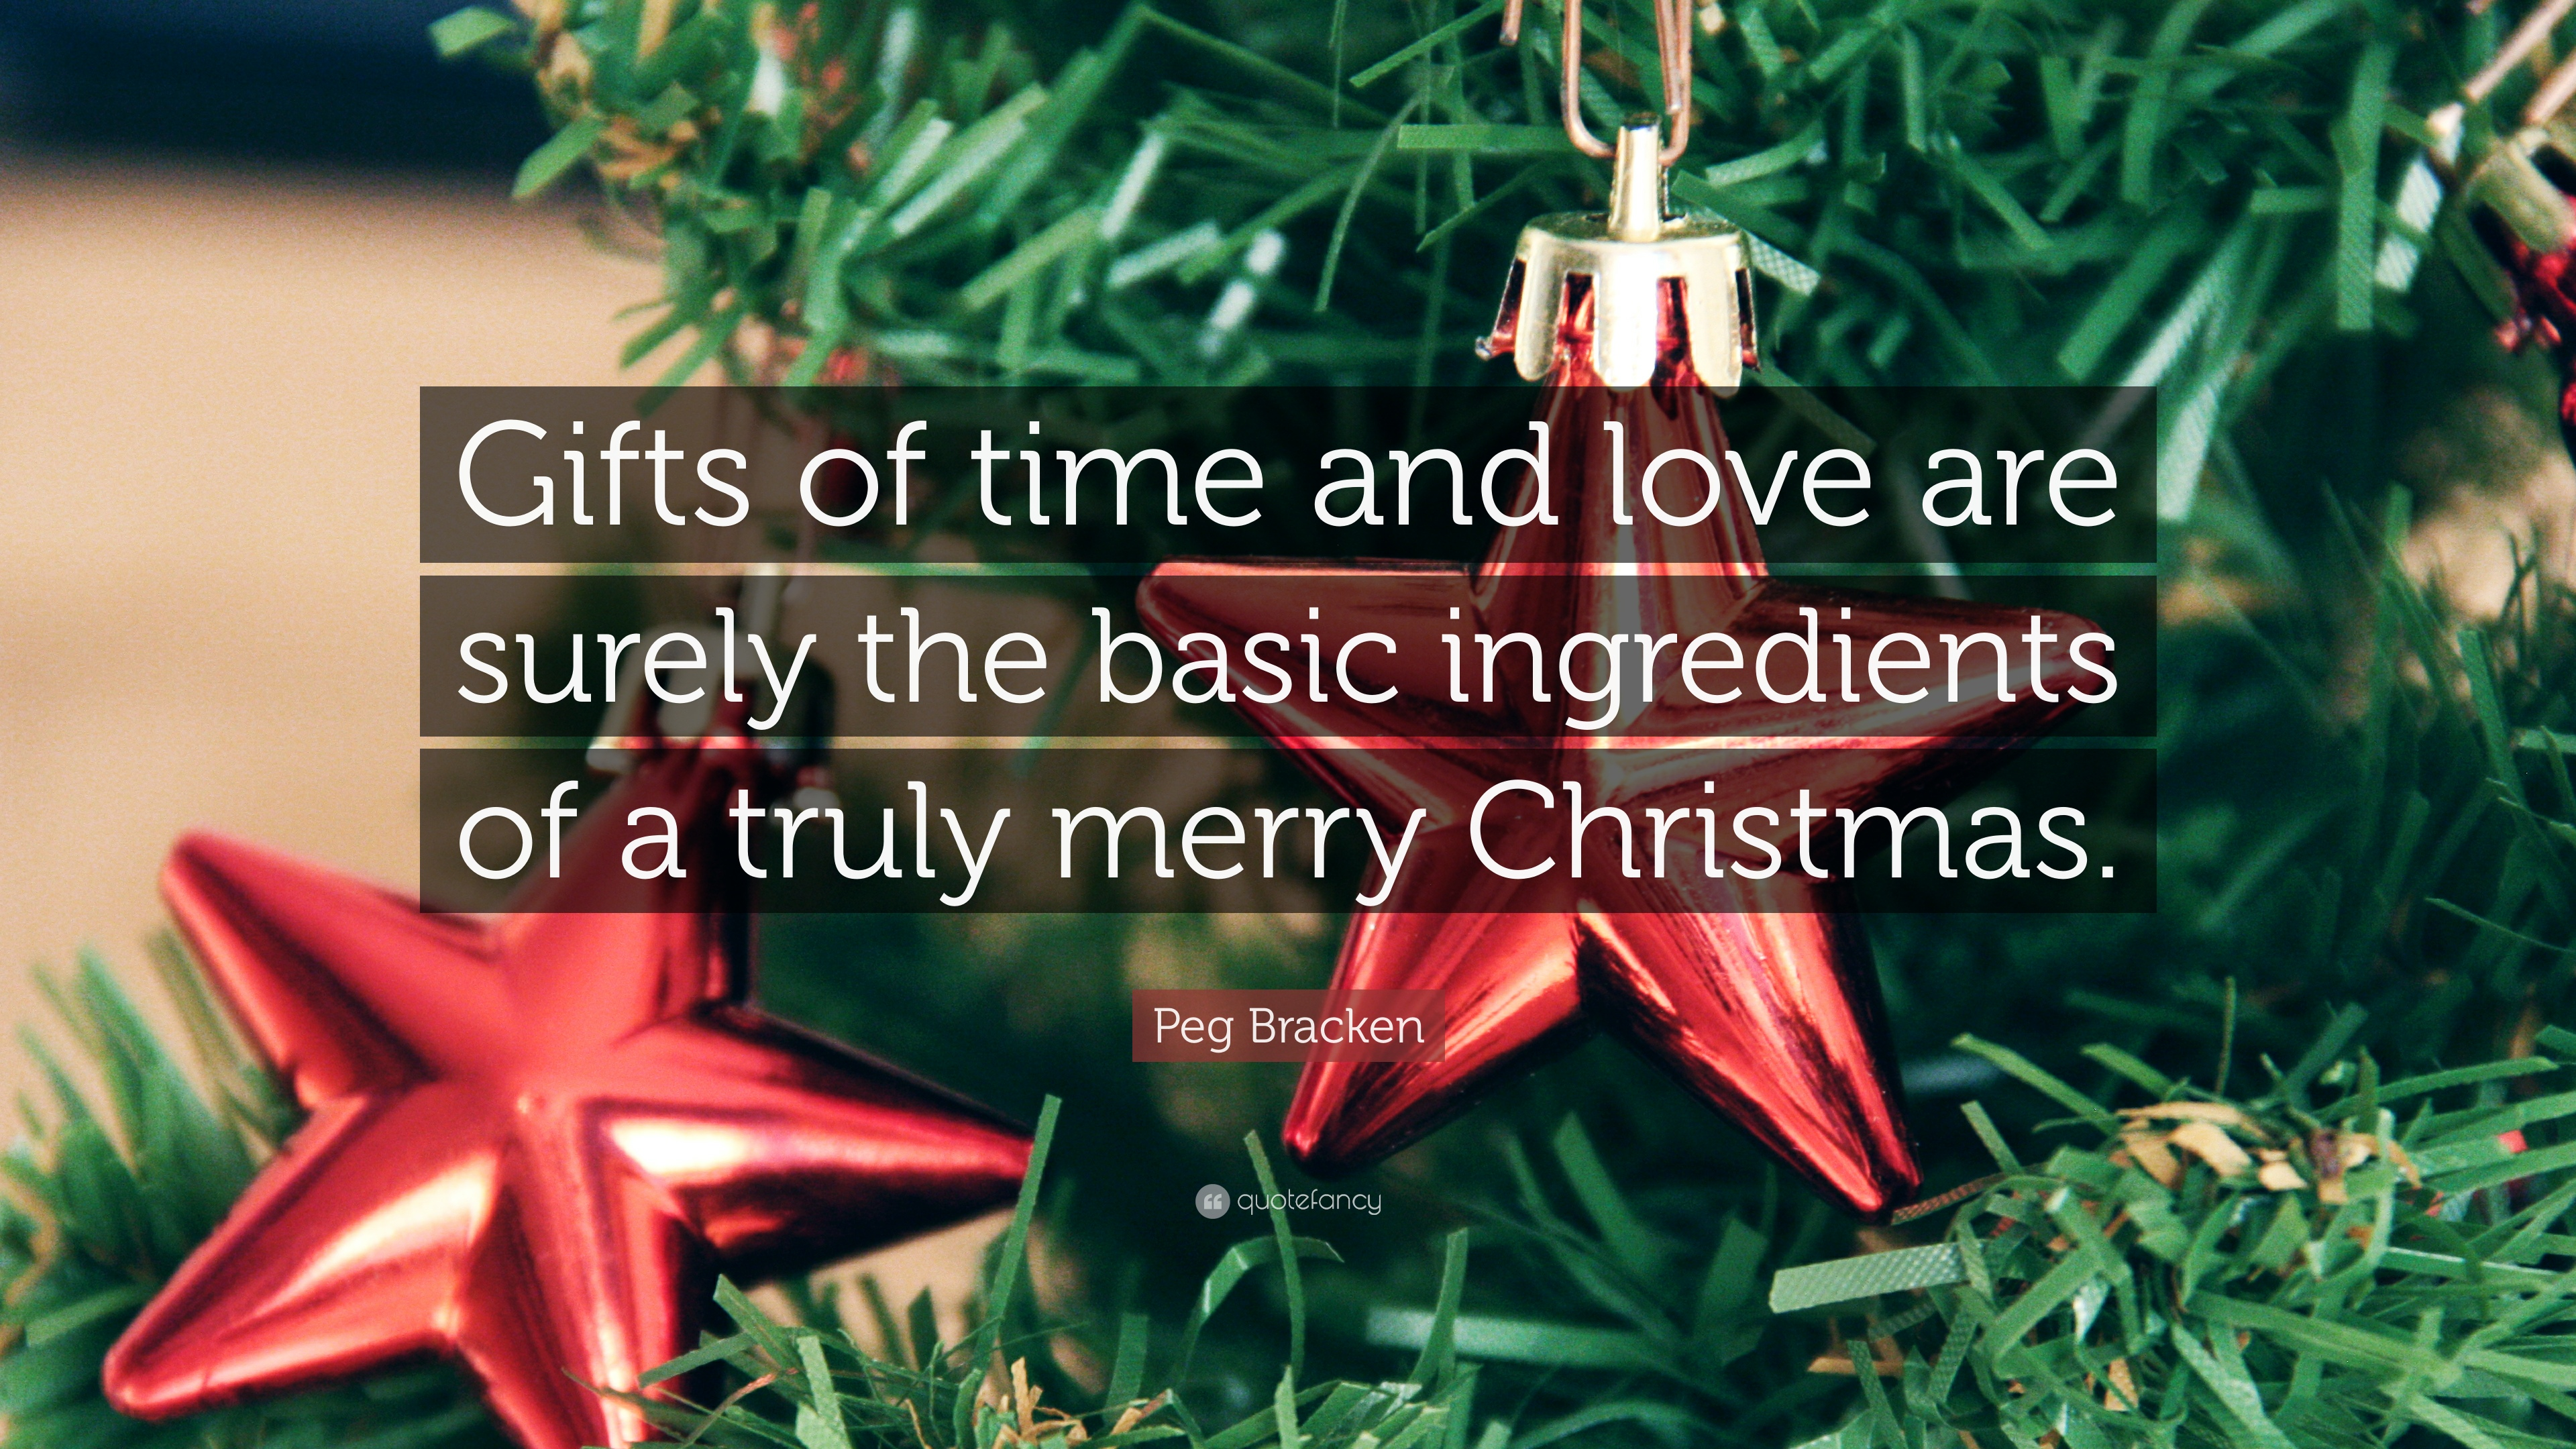 Good Wallpaper Love Merry Christmas - 38332-Peg-Bracken-Quote-Gifts-of-time-and-love-are-surely-the-basic  Trends_94837.jpg